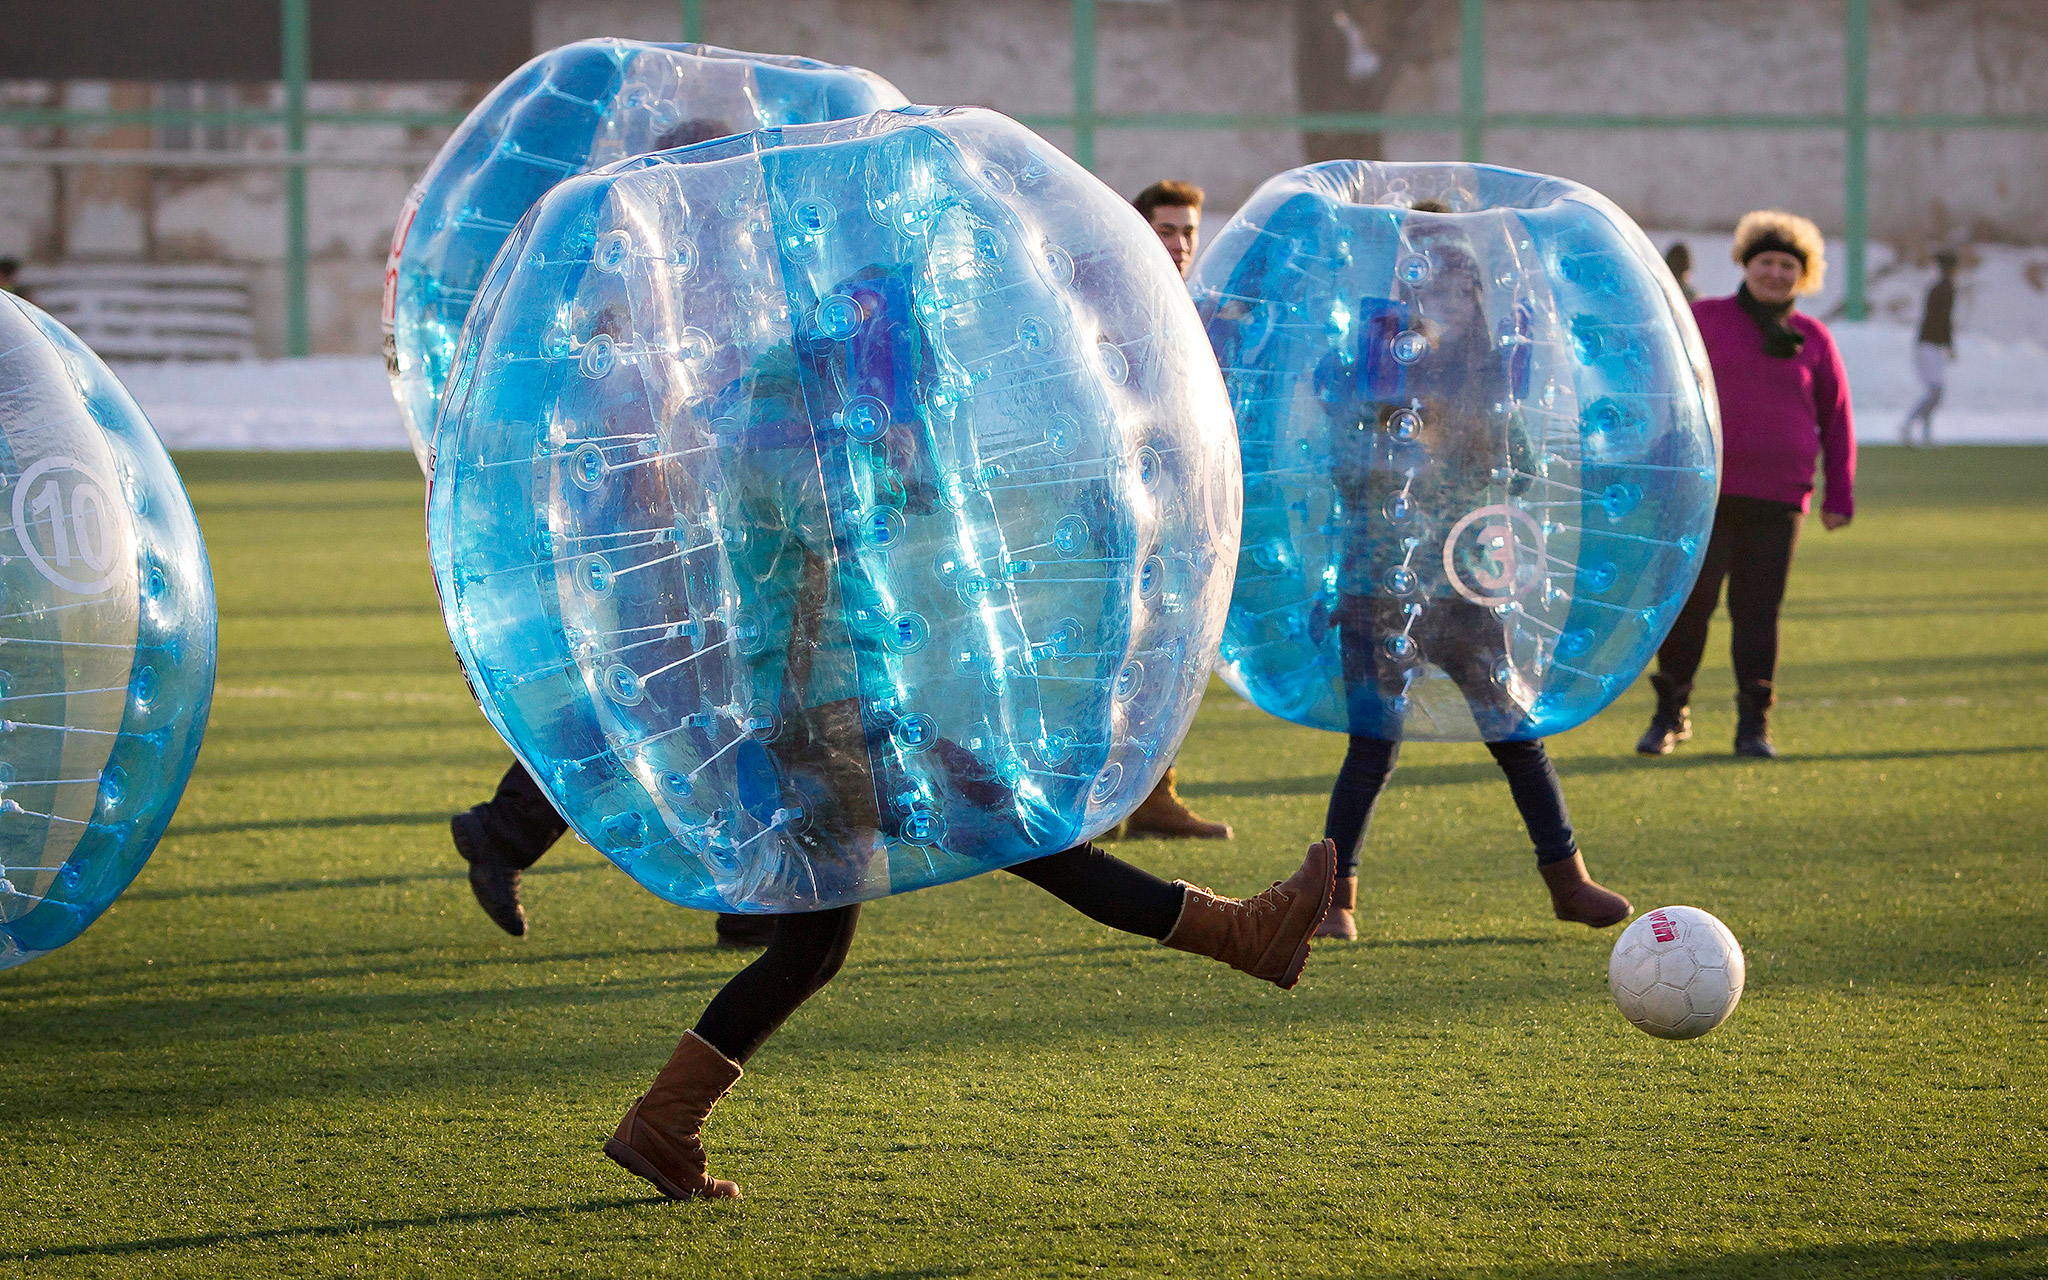 Bubble soccer friday funnies for jan 17 2014 espn